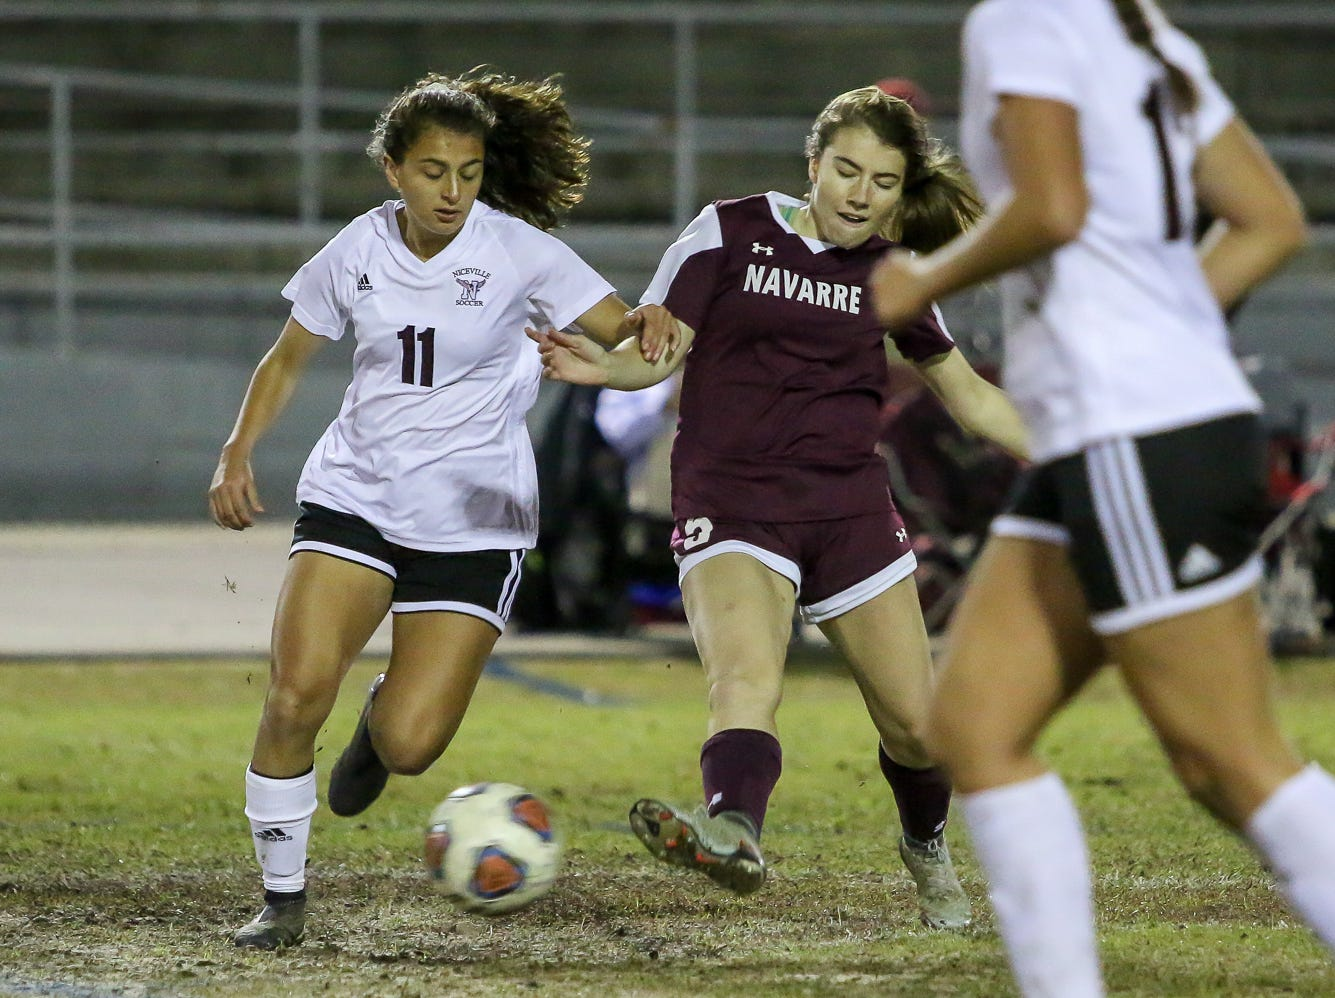 Niceville's Kayla Fernandez (11) and Navarre's Jocelyn Fernandez (5) battle for control of the ball in a District 1-4A showdown of unbeaten teams at Navarre High School on Tuesday, December 4, 2018. The game ended in a 1-1 tie.